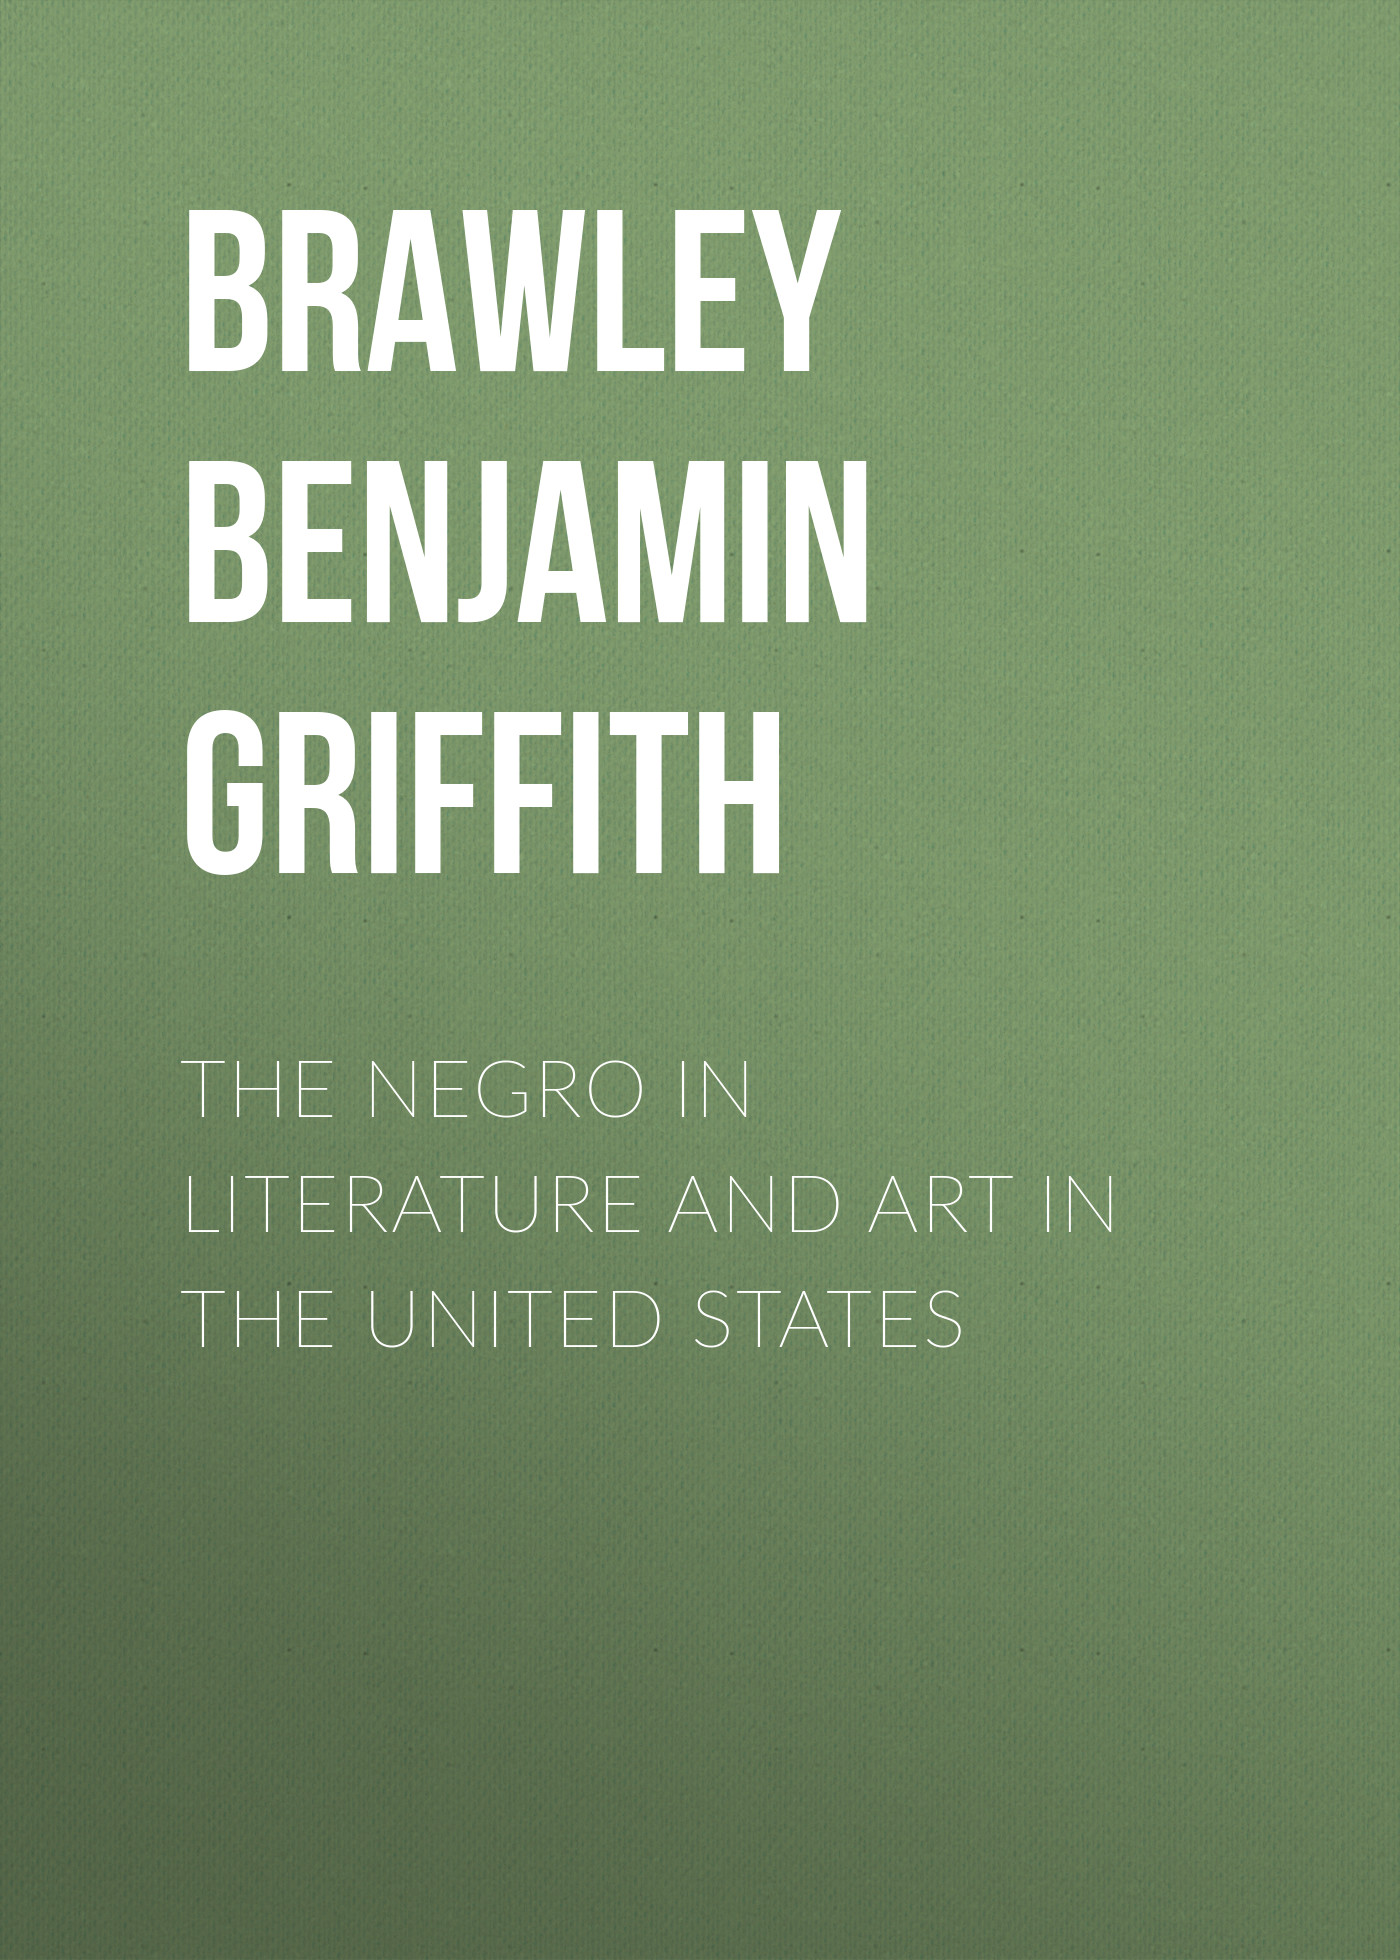 Brawley Benjamin Griffith The Negro in Literature and Art in the United States academic freedom in the united states does it exist